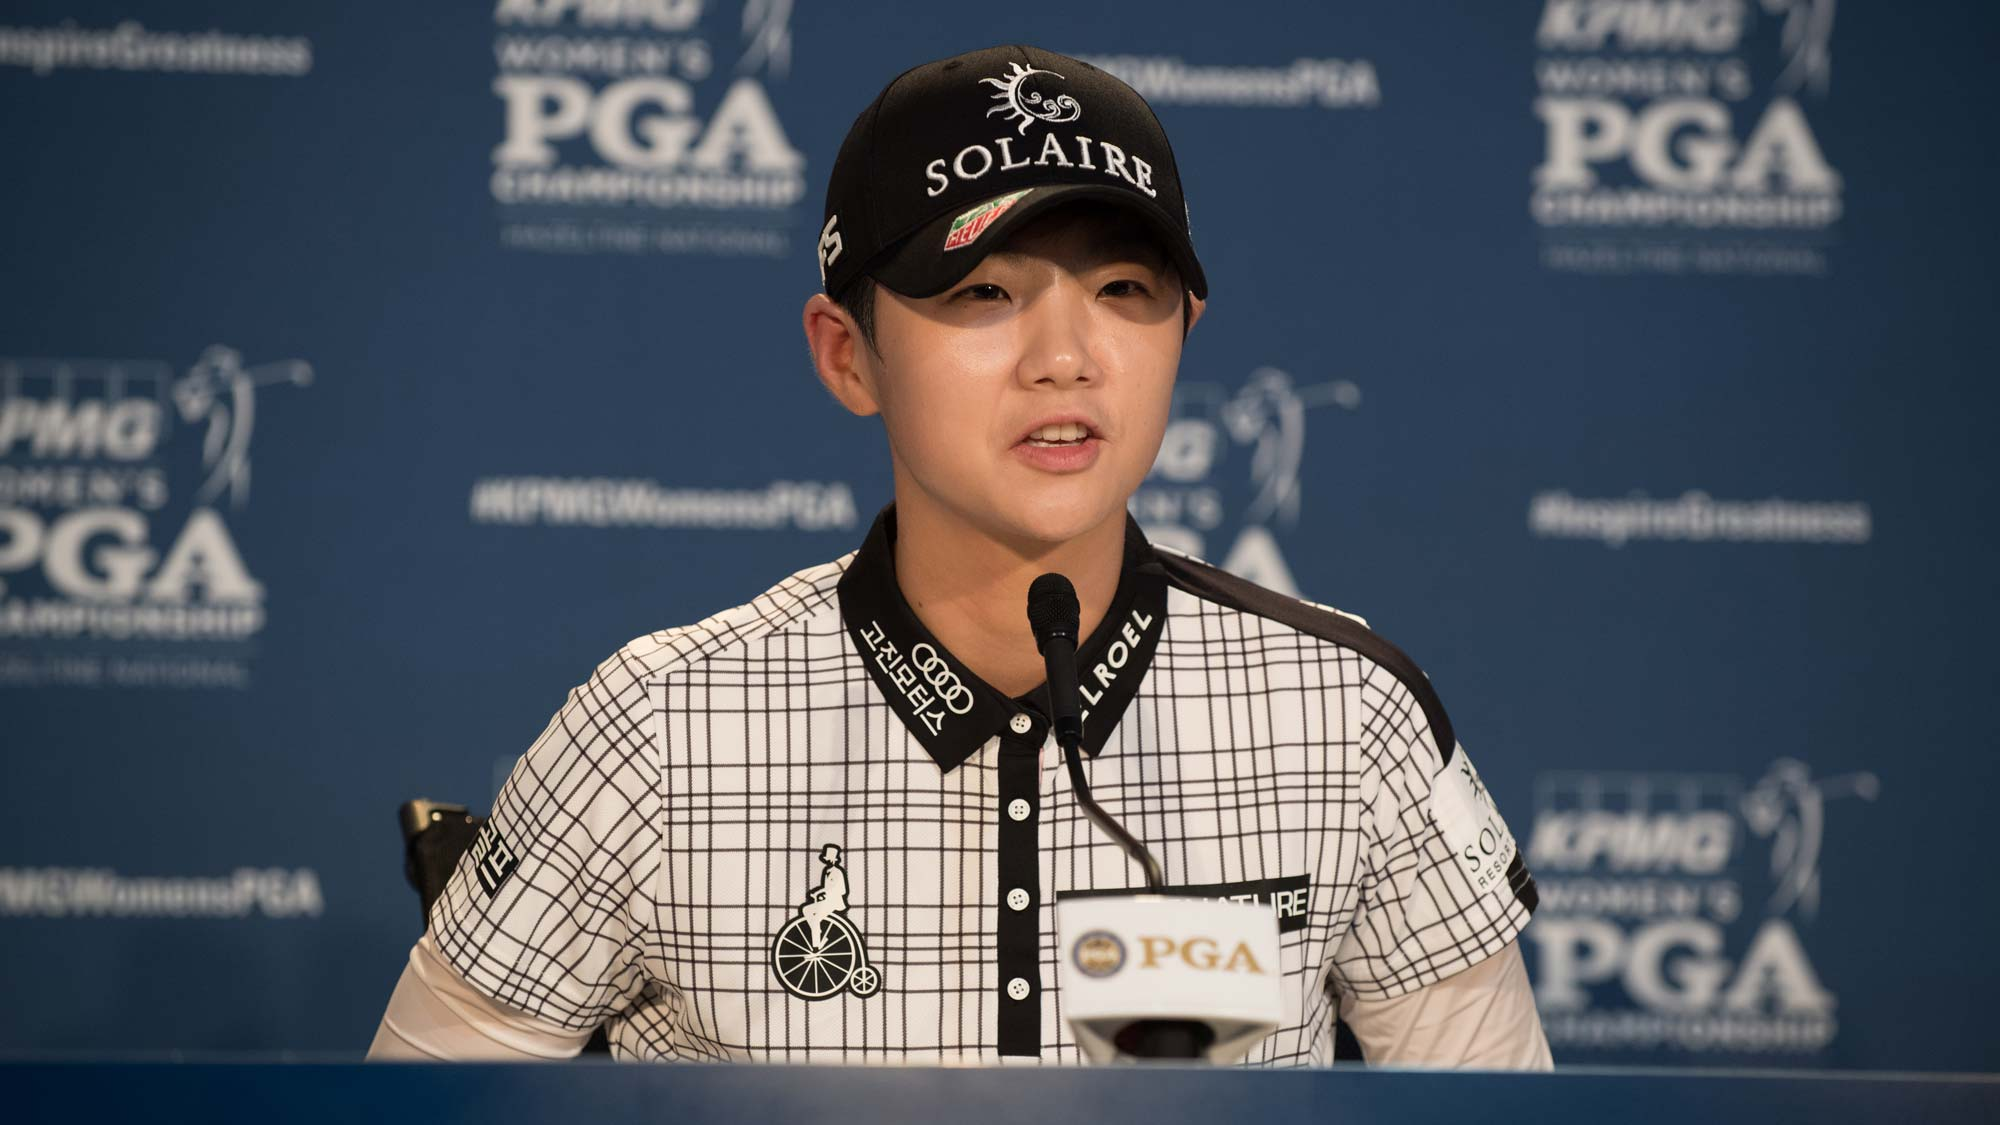 Sung Hyun Park of the Republic of Korea speaks at a press conference during the practice round for the 65th KPMG Women's PGA Championship